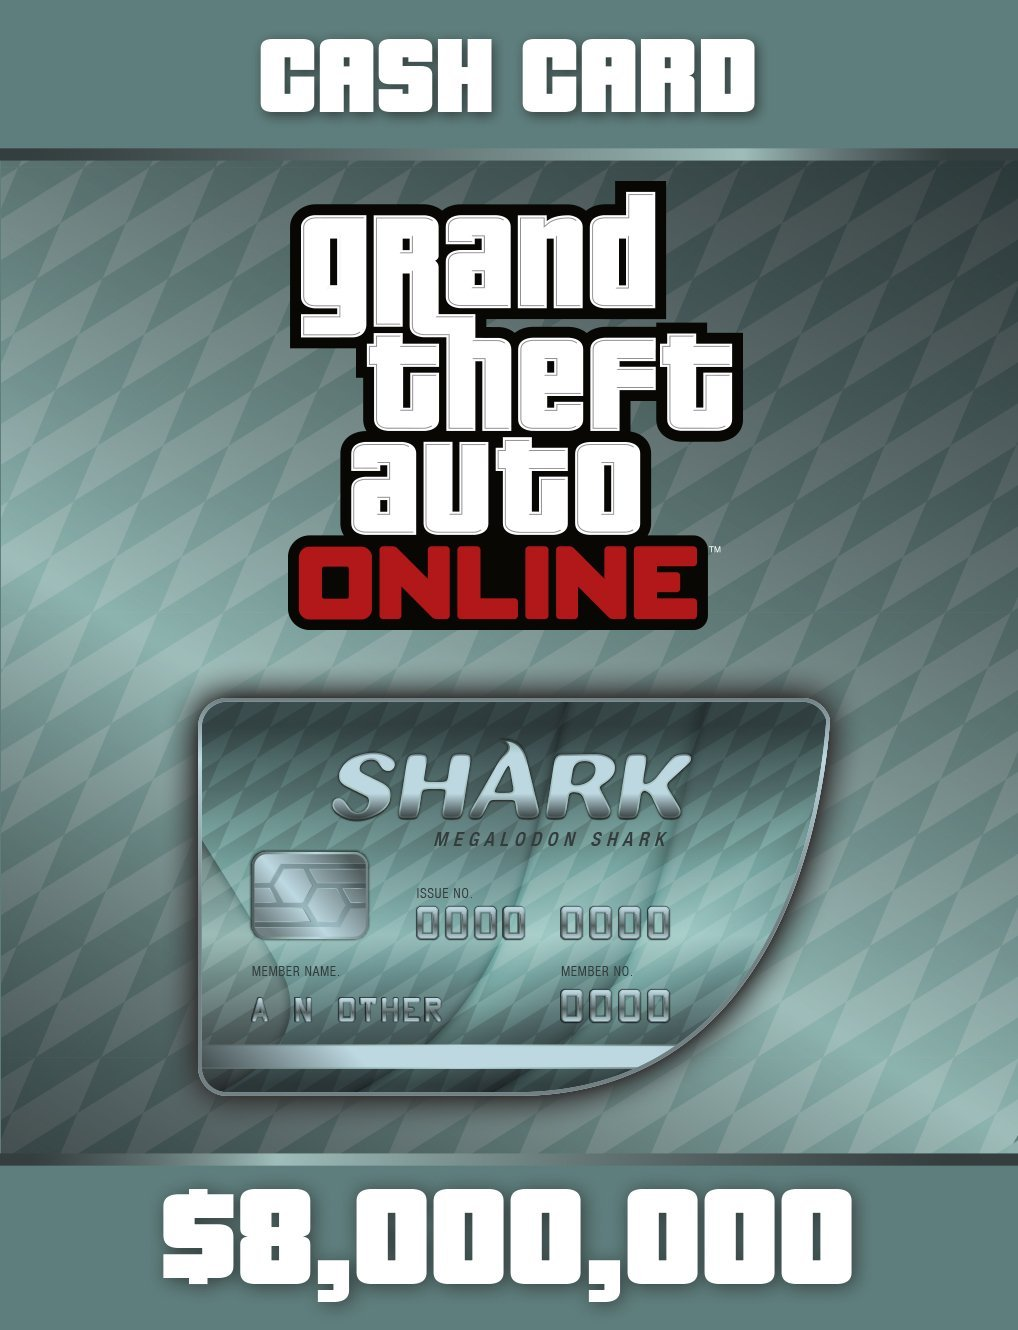 Grand Theft Auto Online | GTA V Megalodon Shark Cash Card | 8,000,000 GTA-Dollars [PC Code] (Gta V 5 Pc)